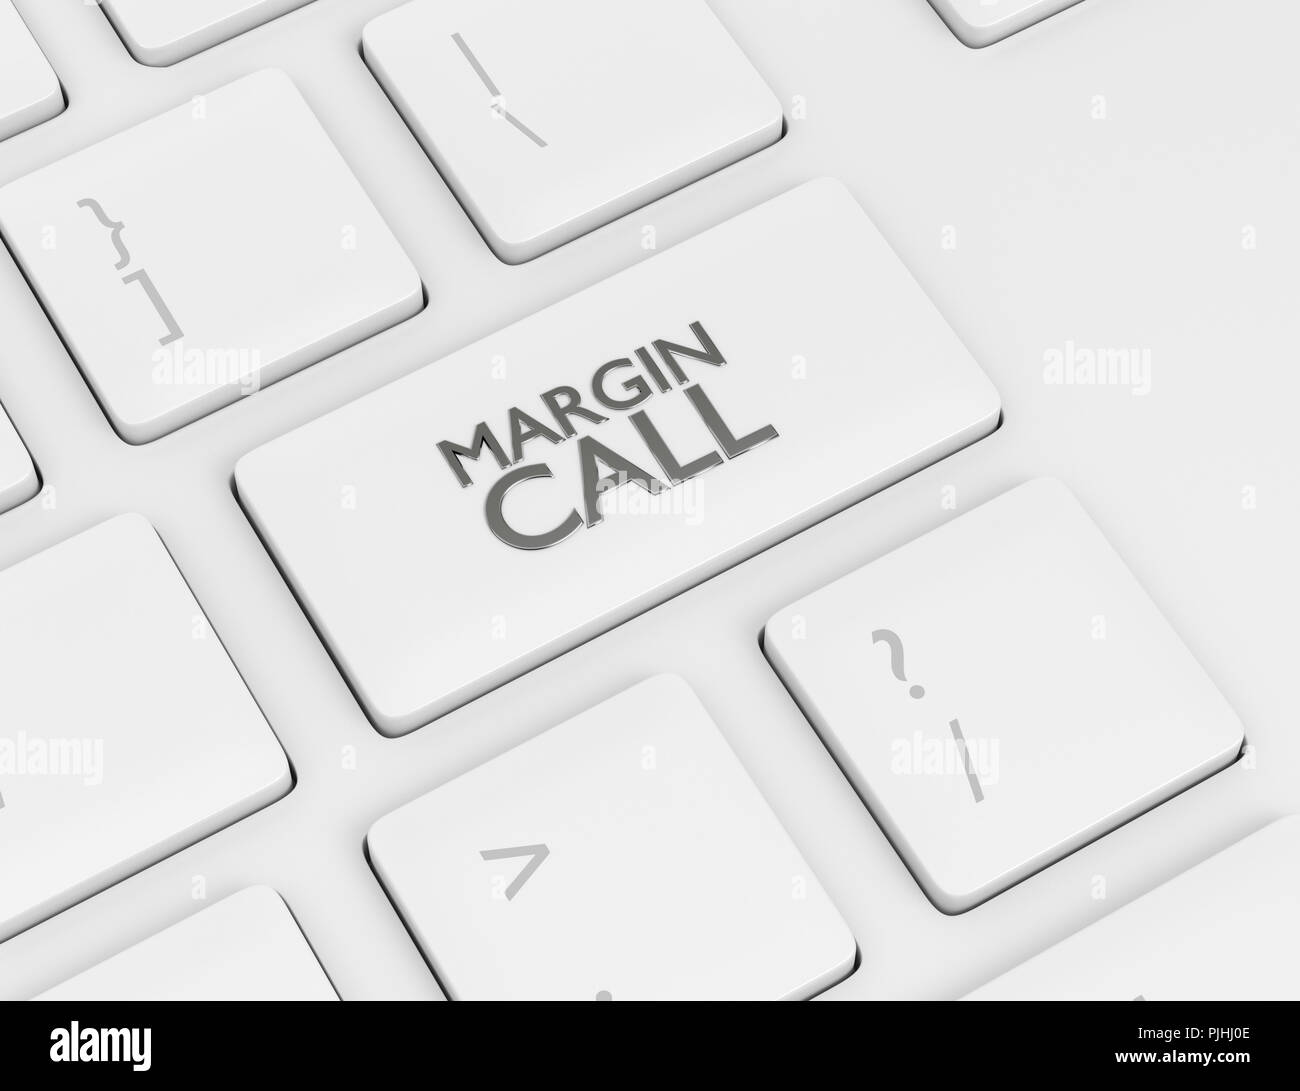 3d render of computer keyboard with MARGIN CALL button - Stock Image